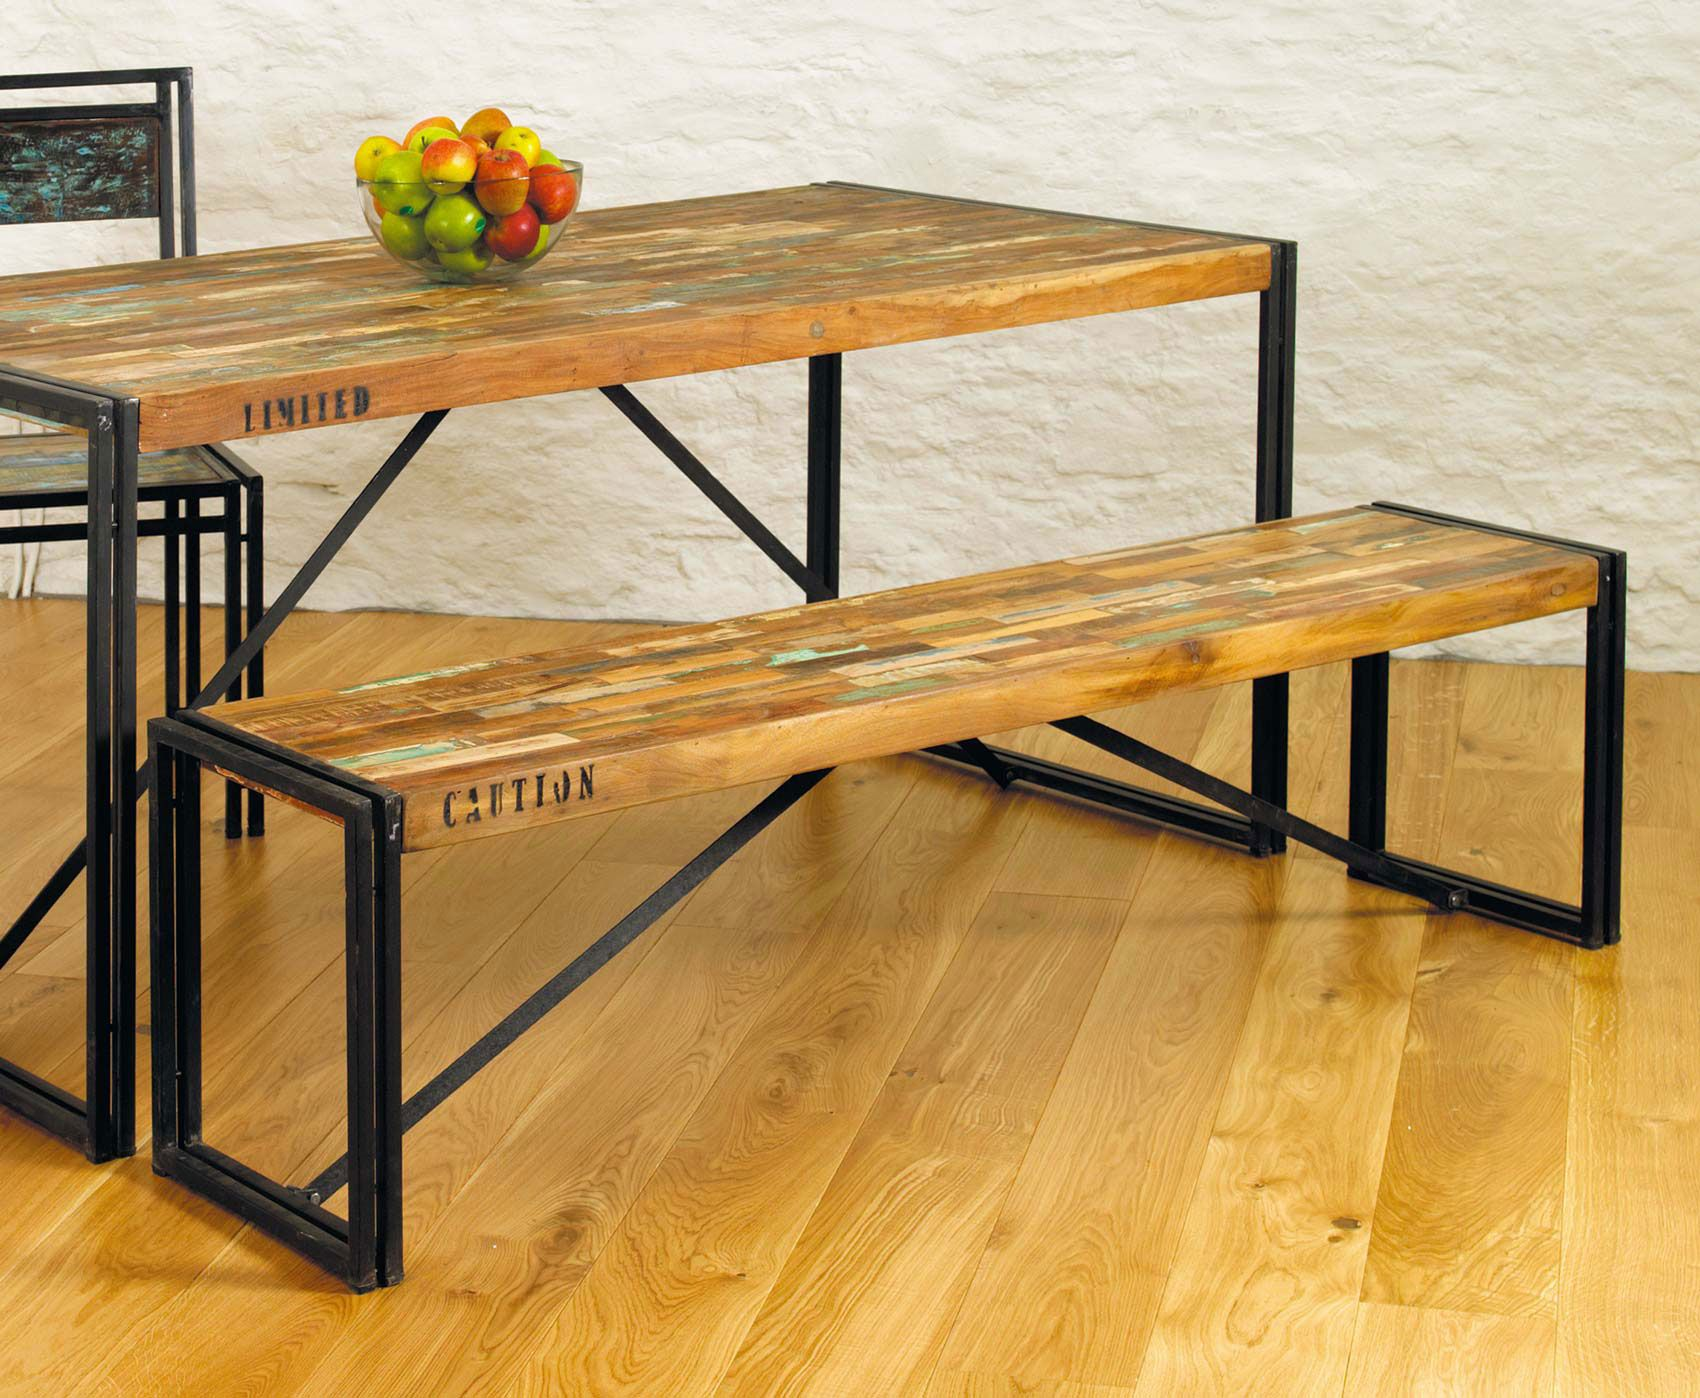 Rustic Industrial Dining Table Chic Hampshire Furniture Completed With Hardwood Benches Using Black Iron Frames On